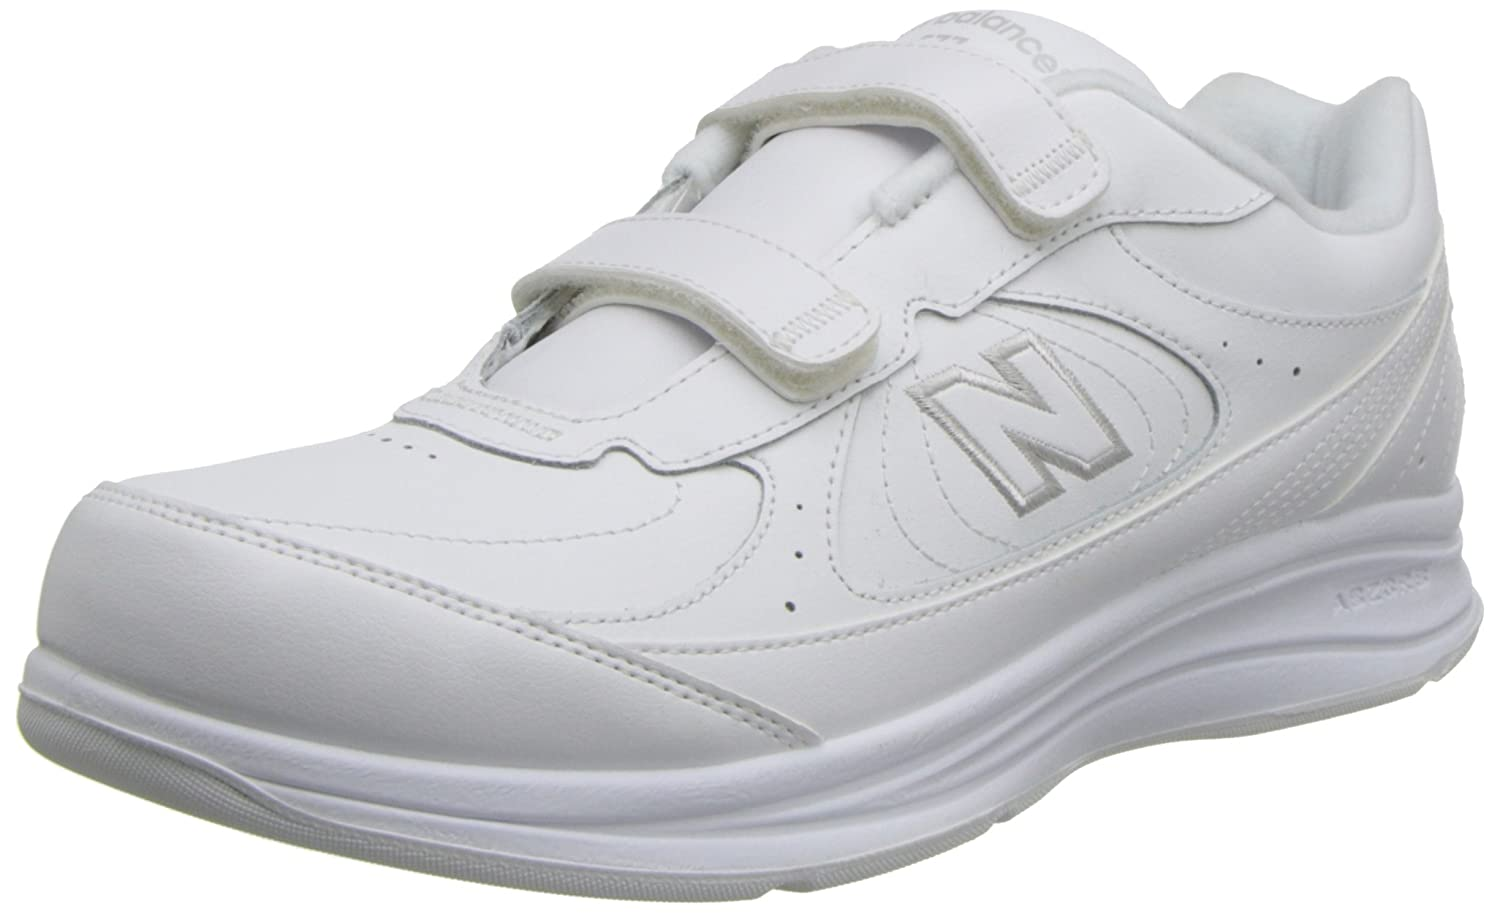 New Balance Men's MW577 Hook and Loop Walking Shoe MW577-Leather-Hook/Loop